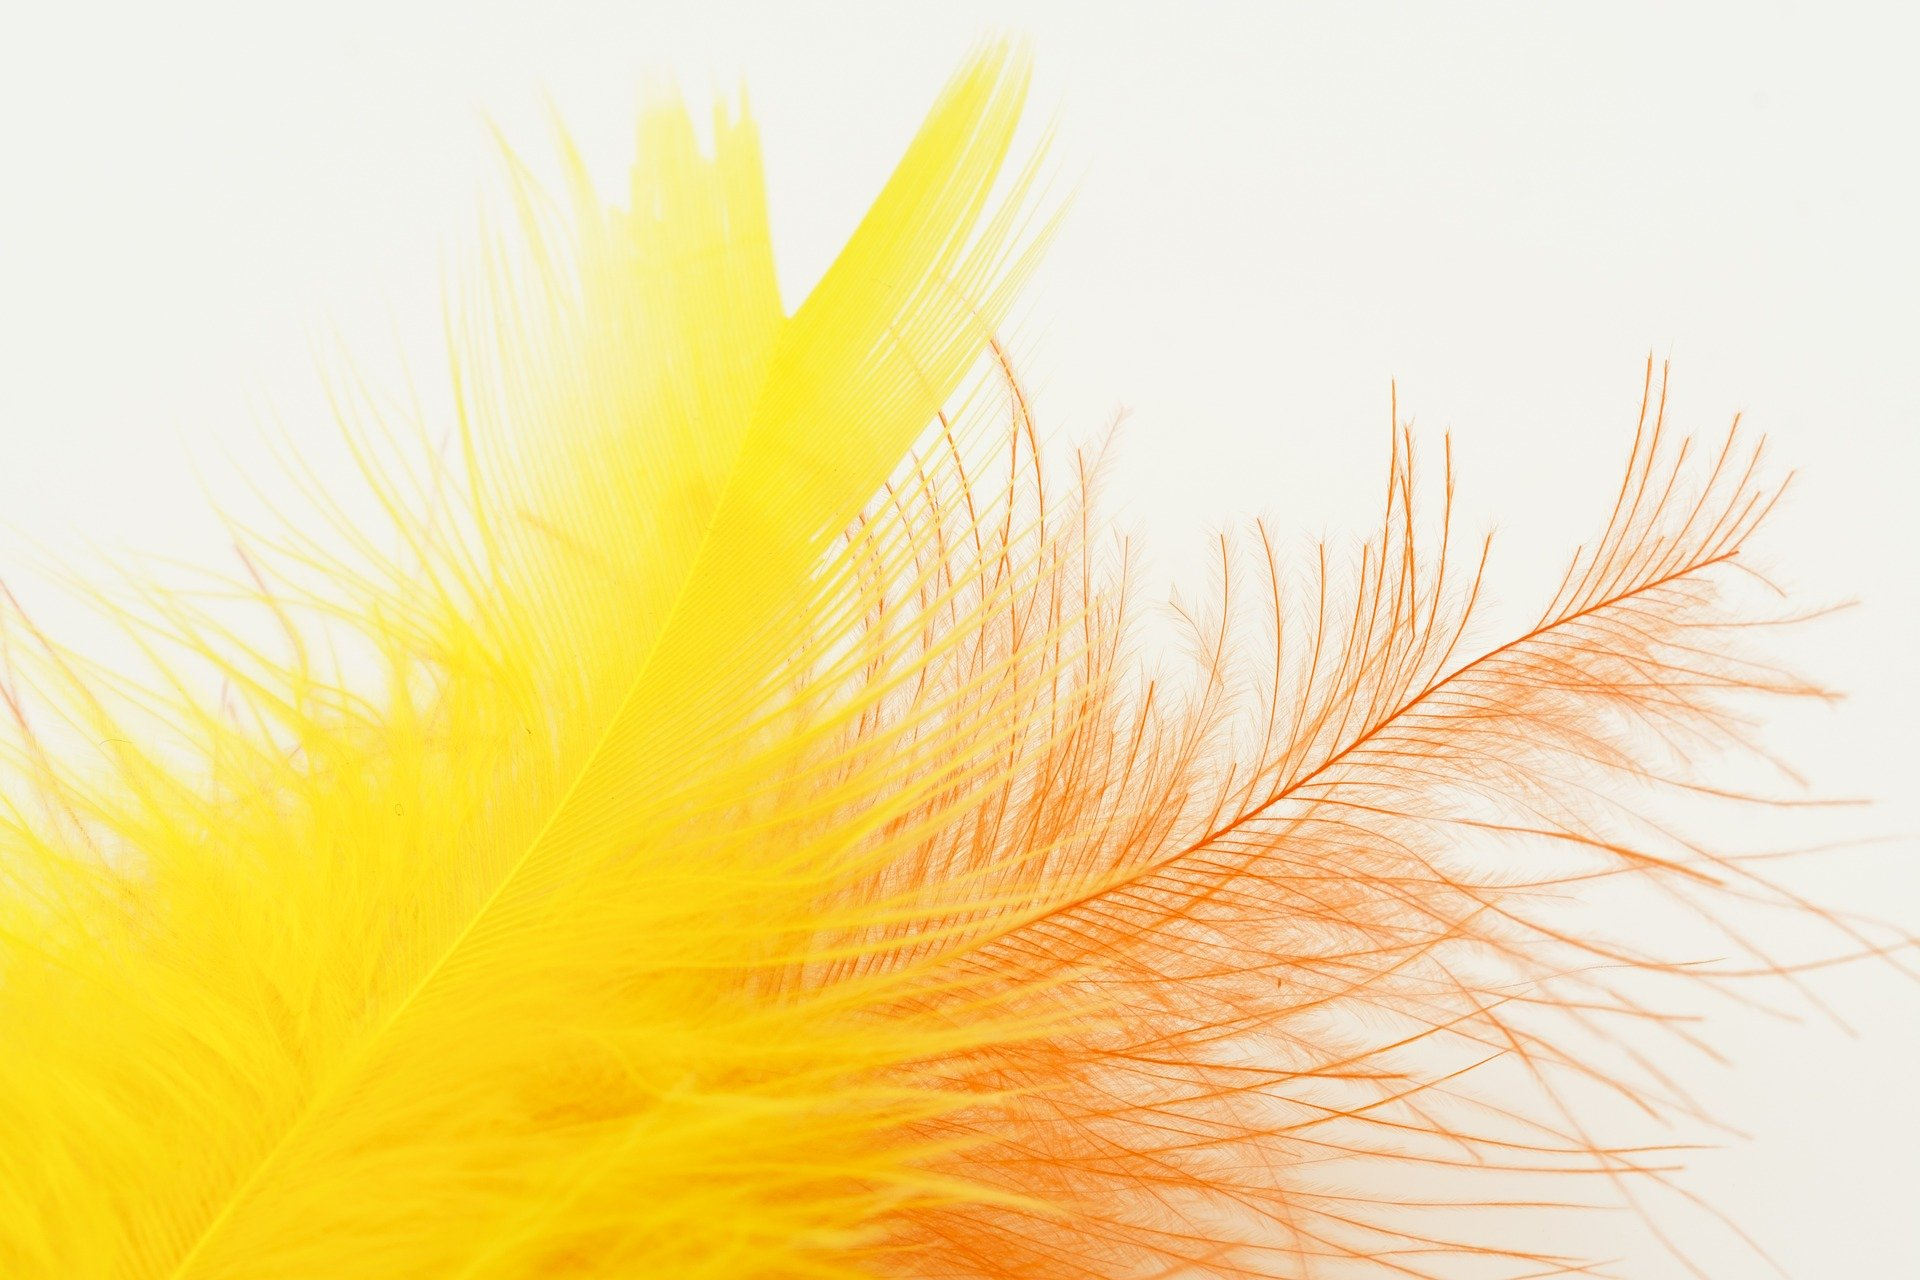 feather-3158328_1920